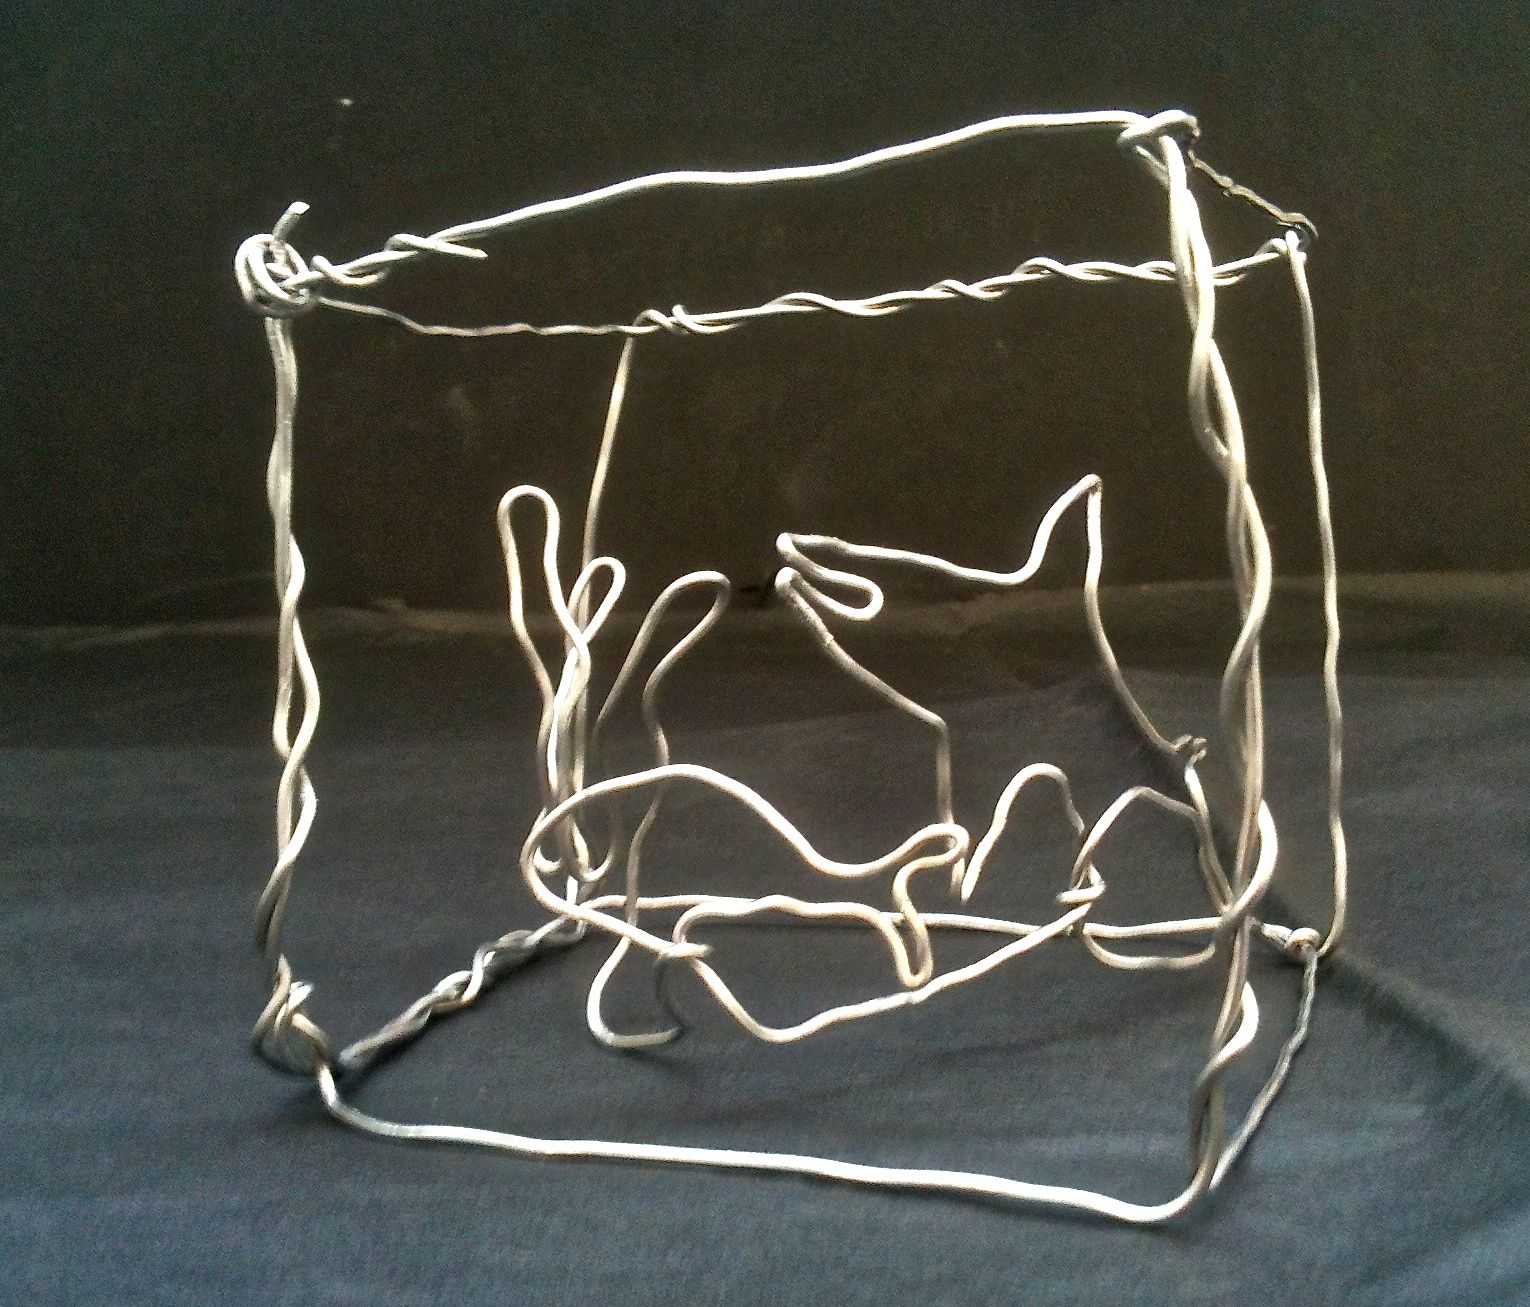 Wire Sculpture With Alexander Calder Art Link